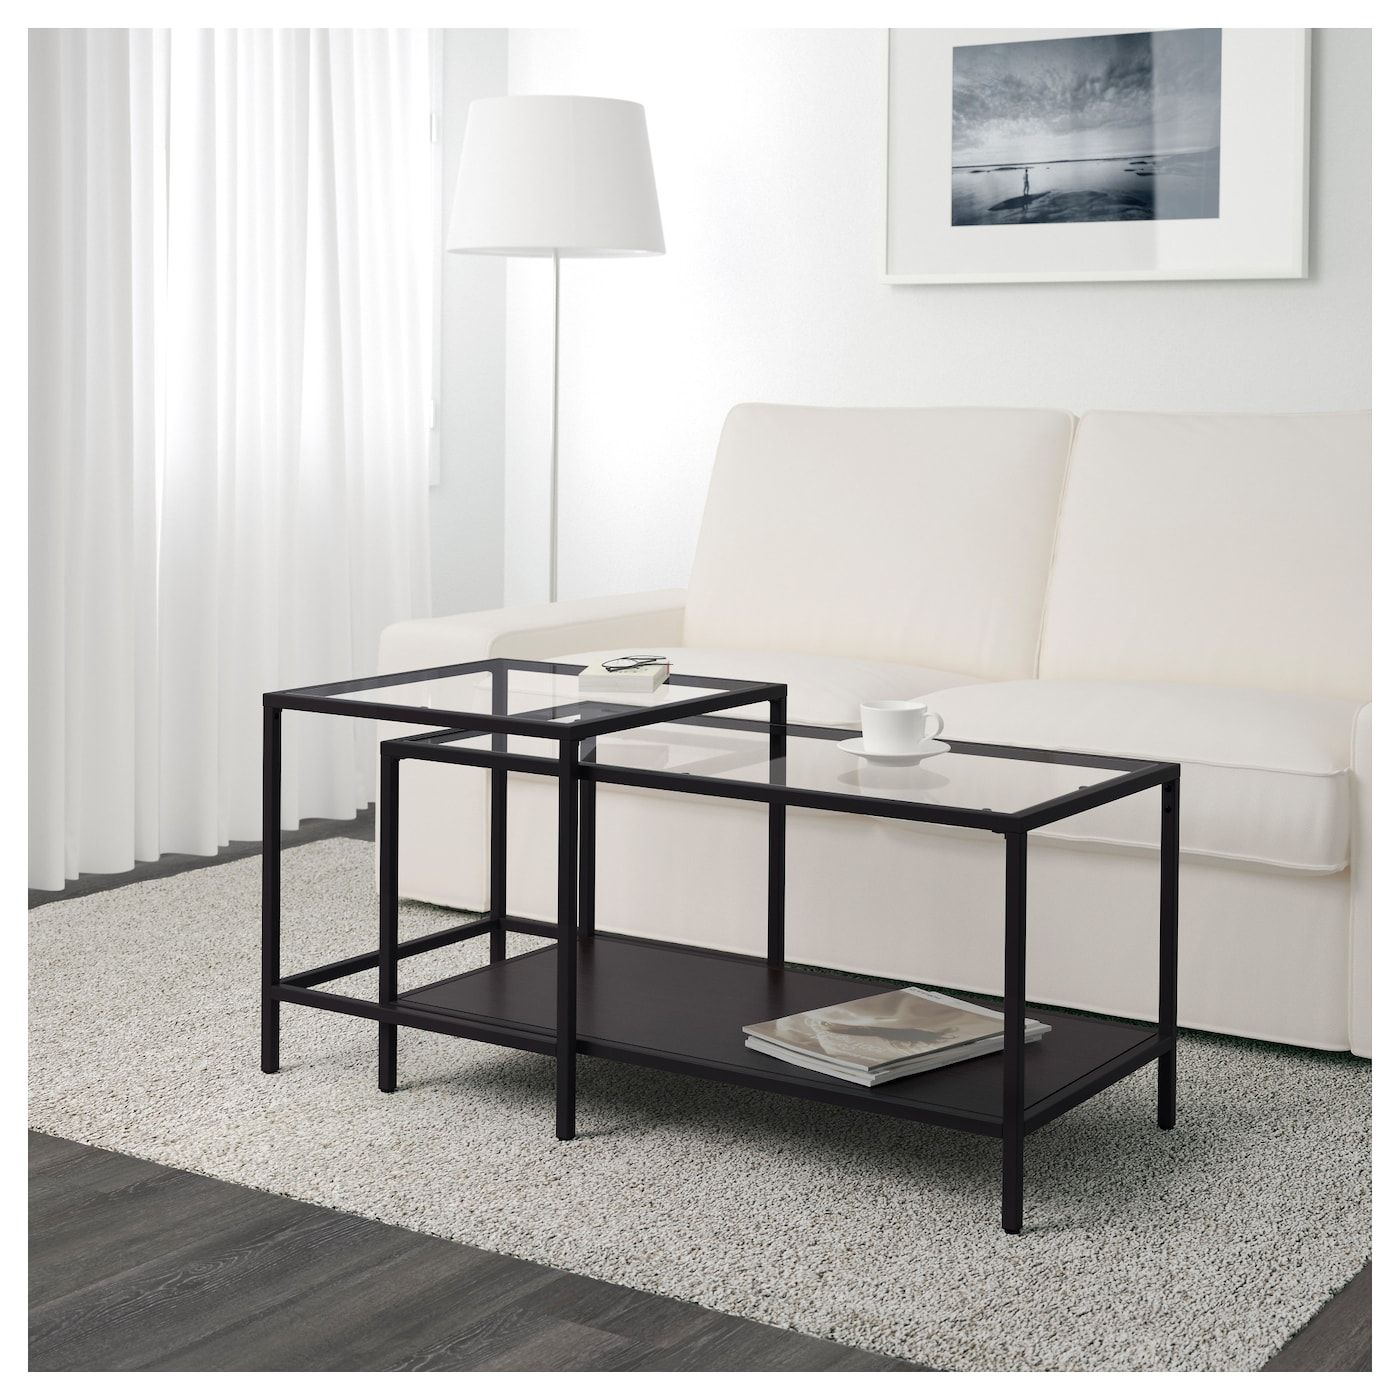 Ikea Couchtisch Mit Glas VittsjÖ Nesting Tables, Set Of 2, Black-brown, Glass, 35 3/8x19 5/8\